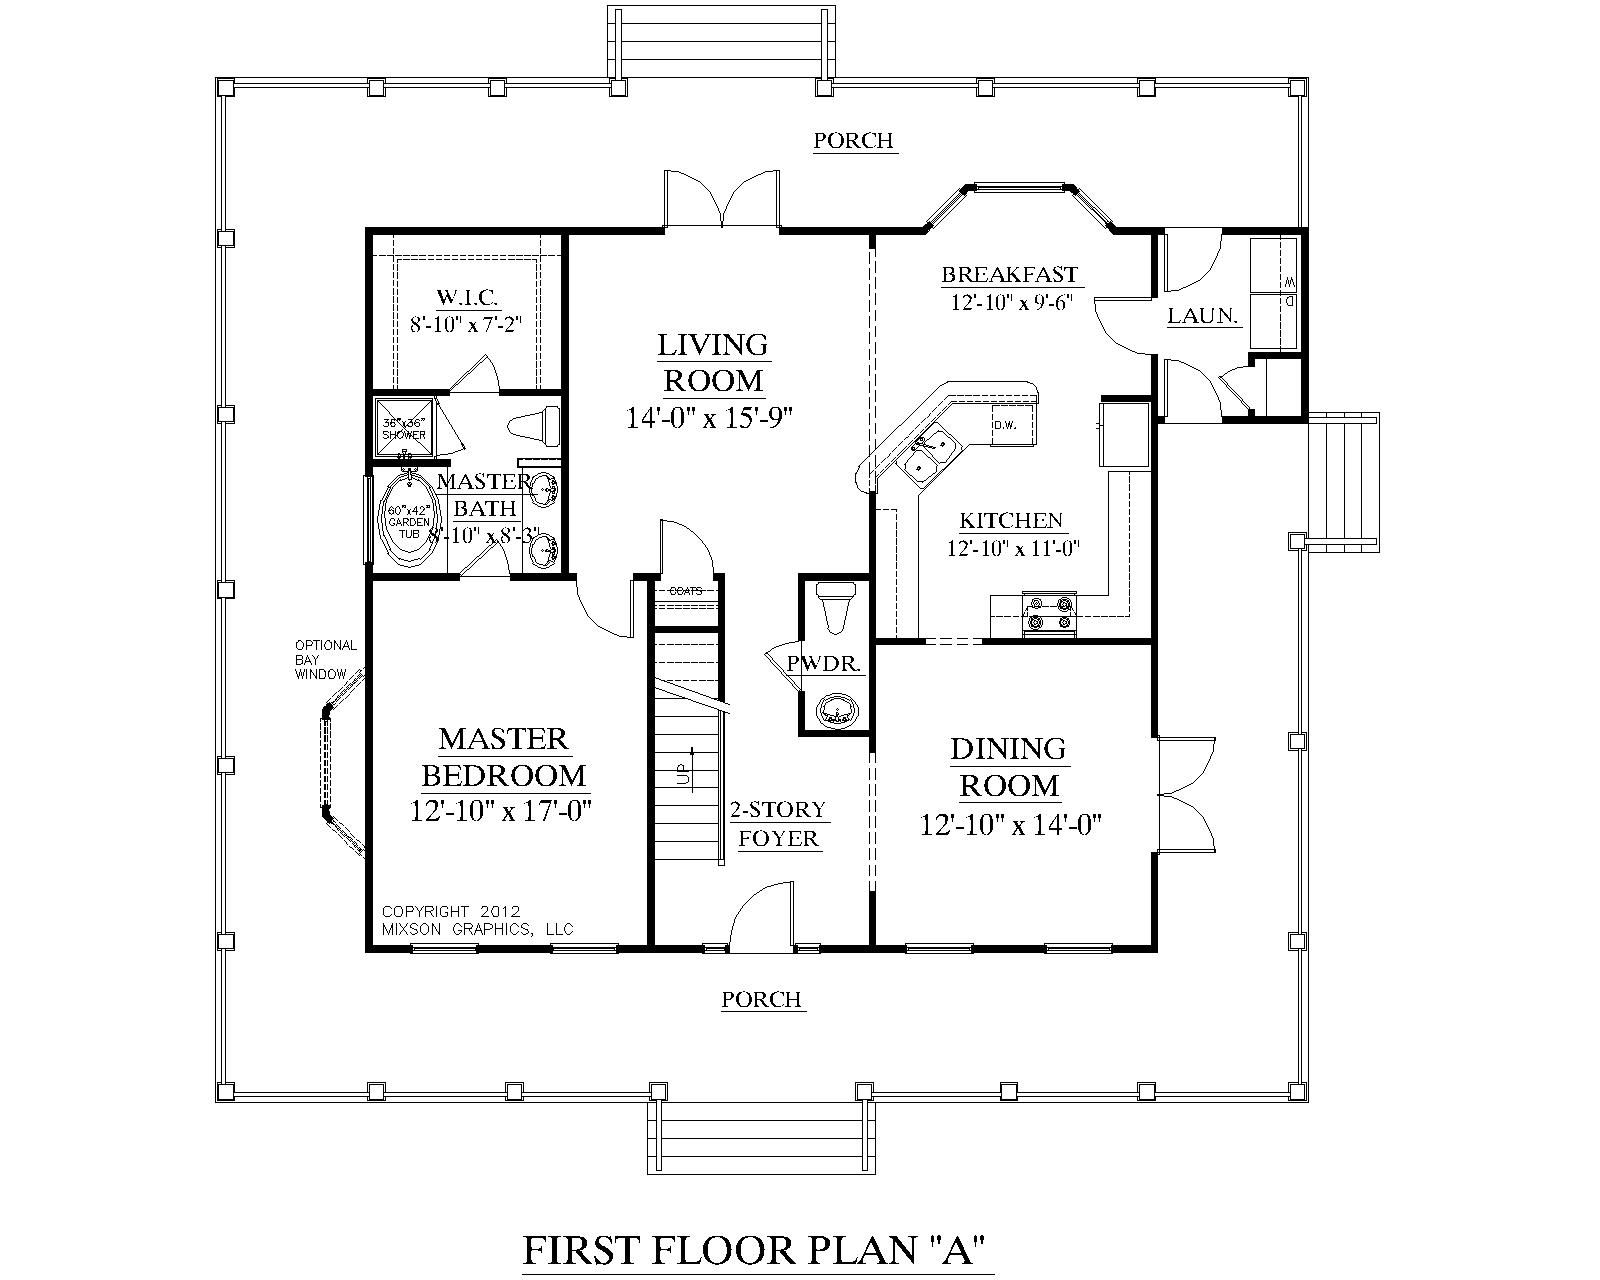 small one bedroom house plans traditional 1 12 story house plan - Small 3 Bedroom House Plans 2